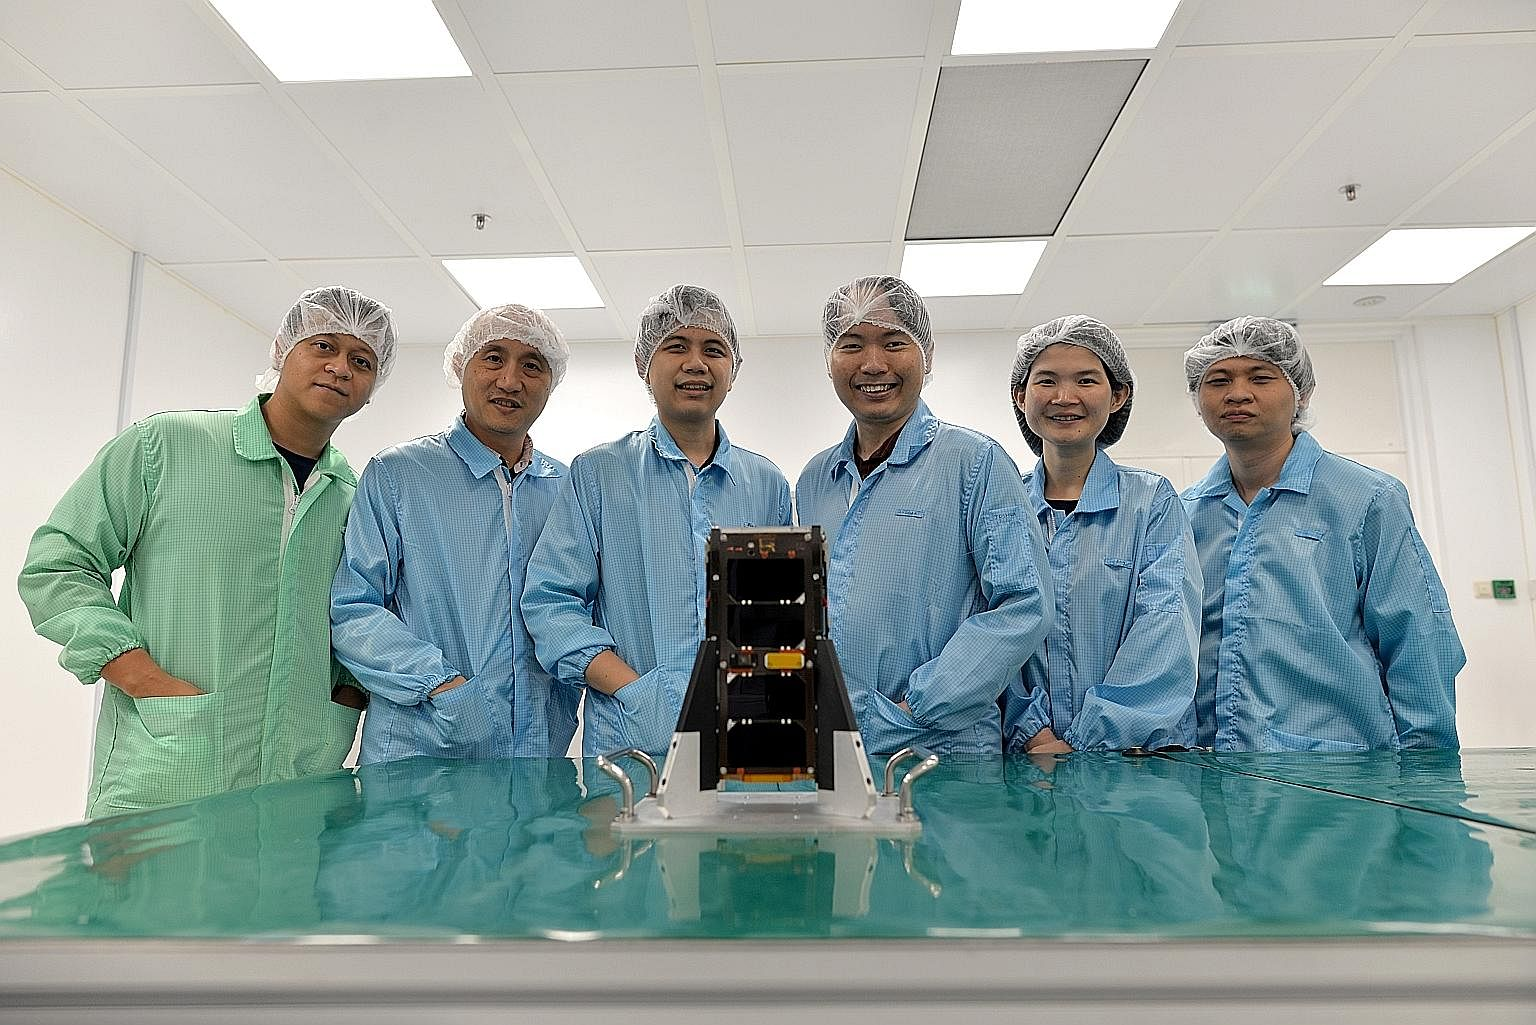 NTU Satellite Research Centre team members (from left) Richard Bui, Lim Sir Yang, Lew Jia Min, Joshua Tay, Amy Wong and Benjamin Tan with the Aoba-Velox IV nanosatellite, which will be launched in Japan later this month. They are learning from and im